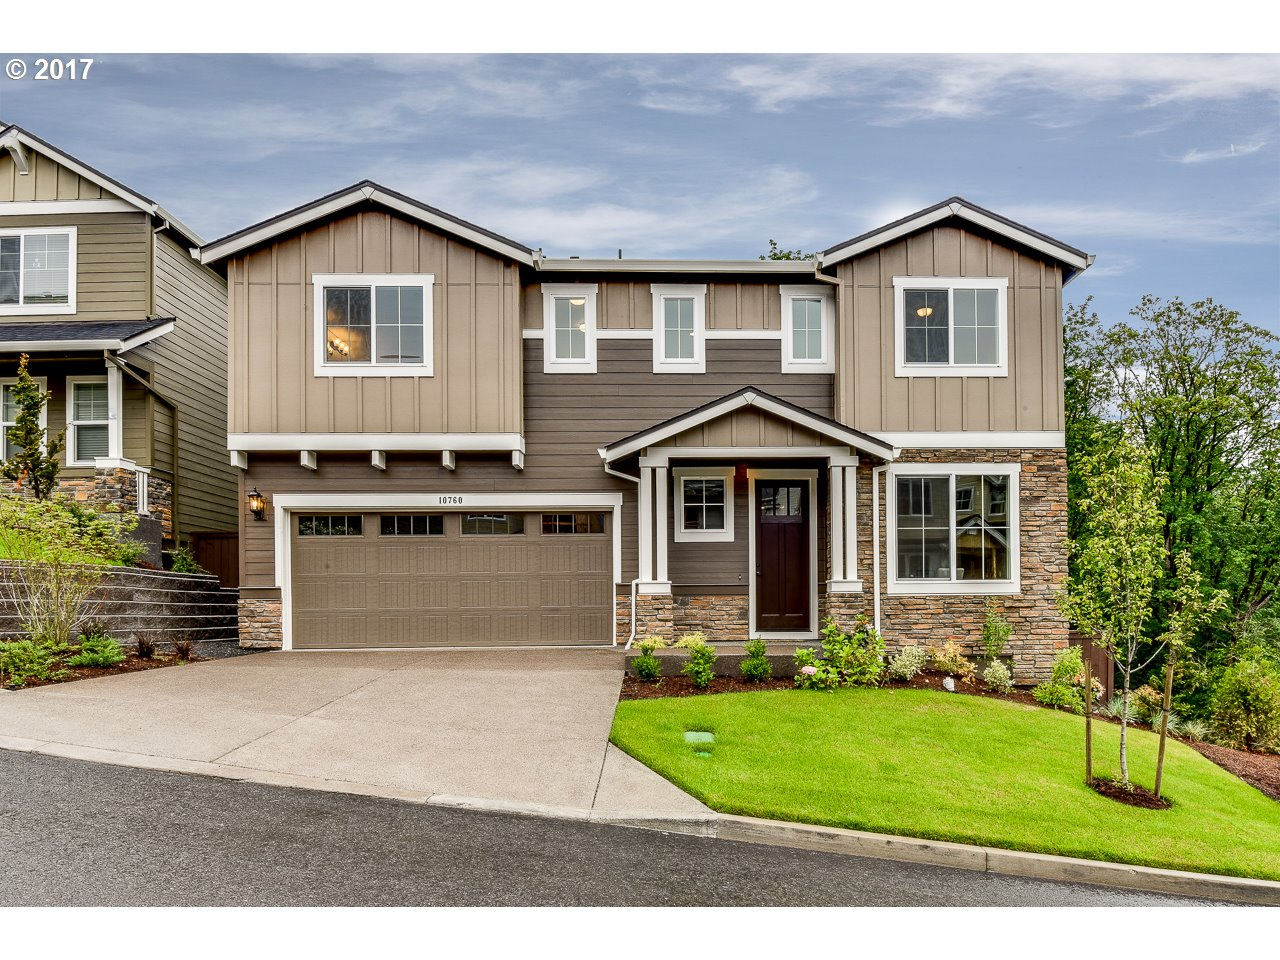 2025 De Vries WAY, West Linn, OR 97068